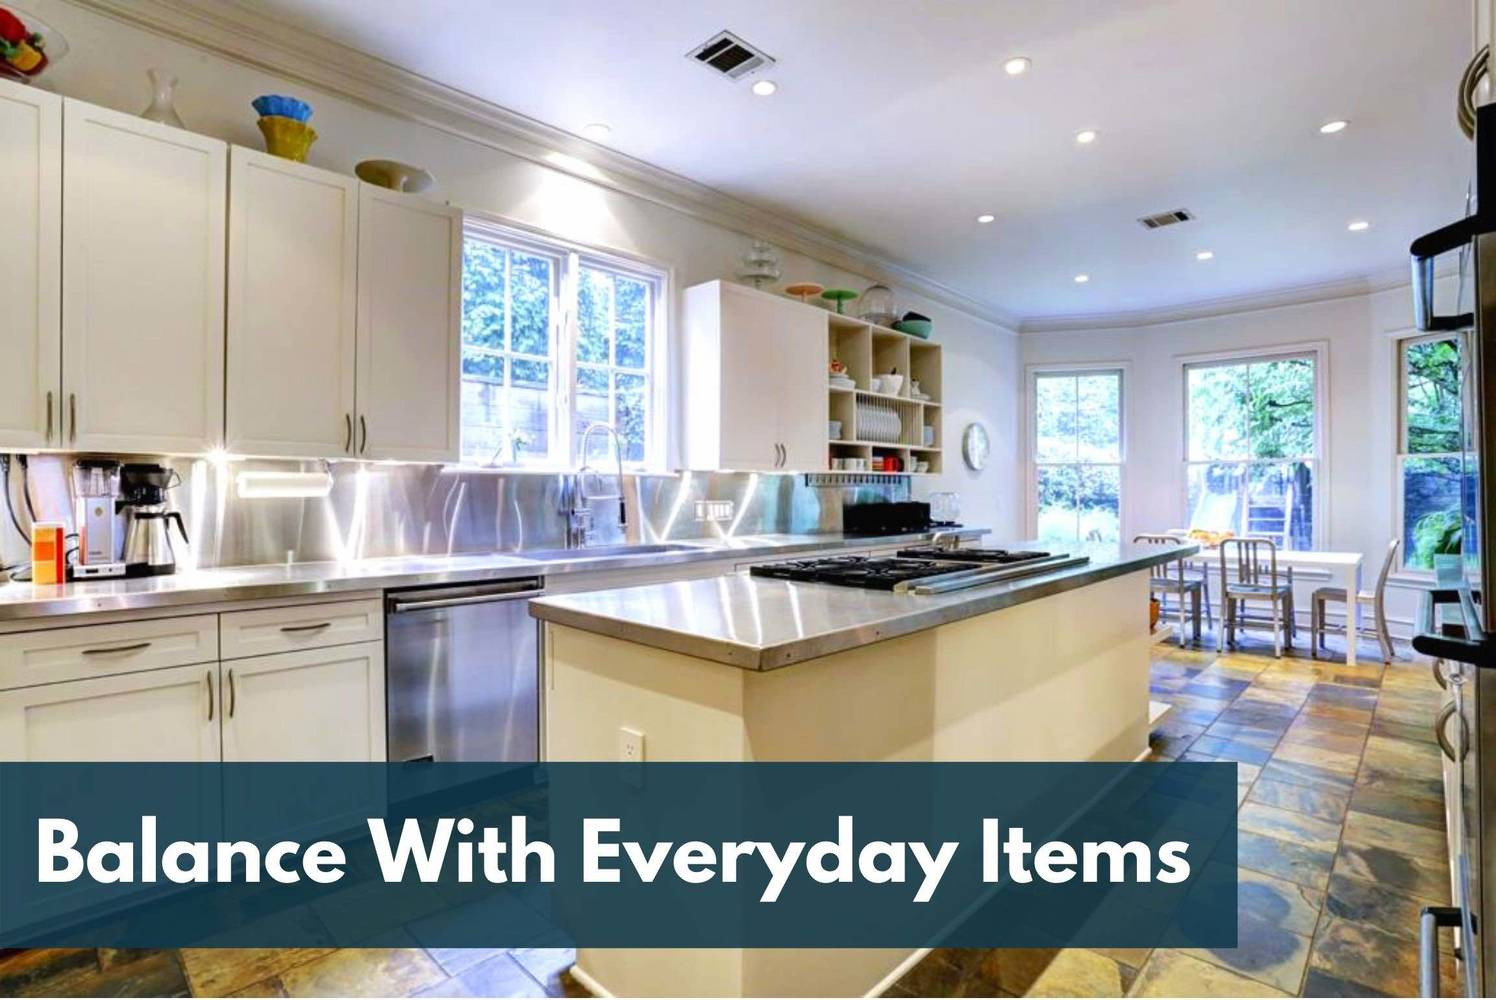 Houston Home Staging For All: Balance With Everyday Items